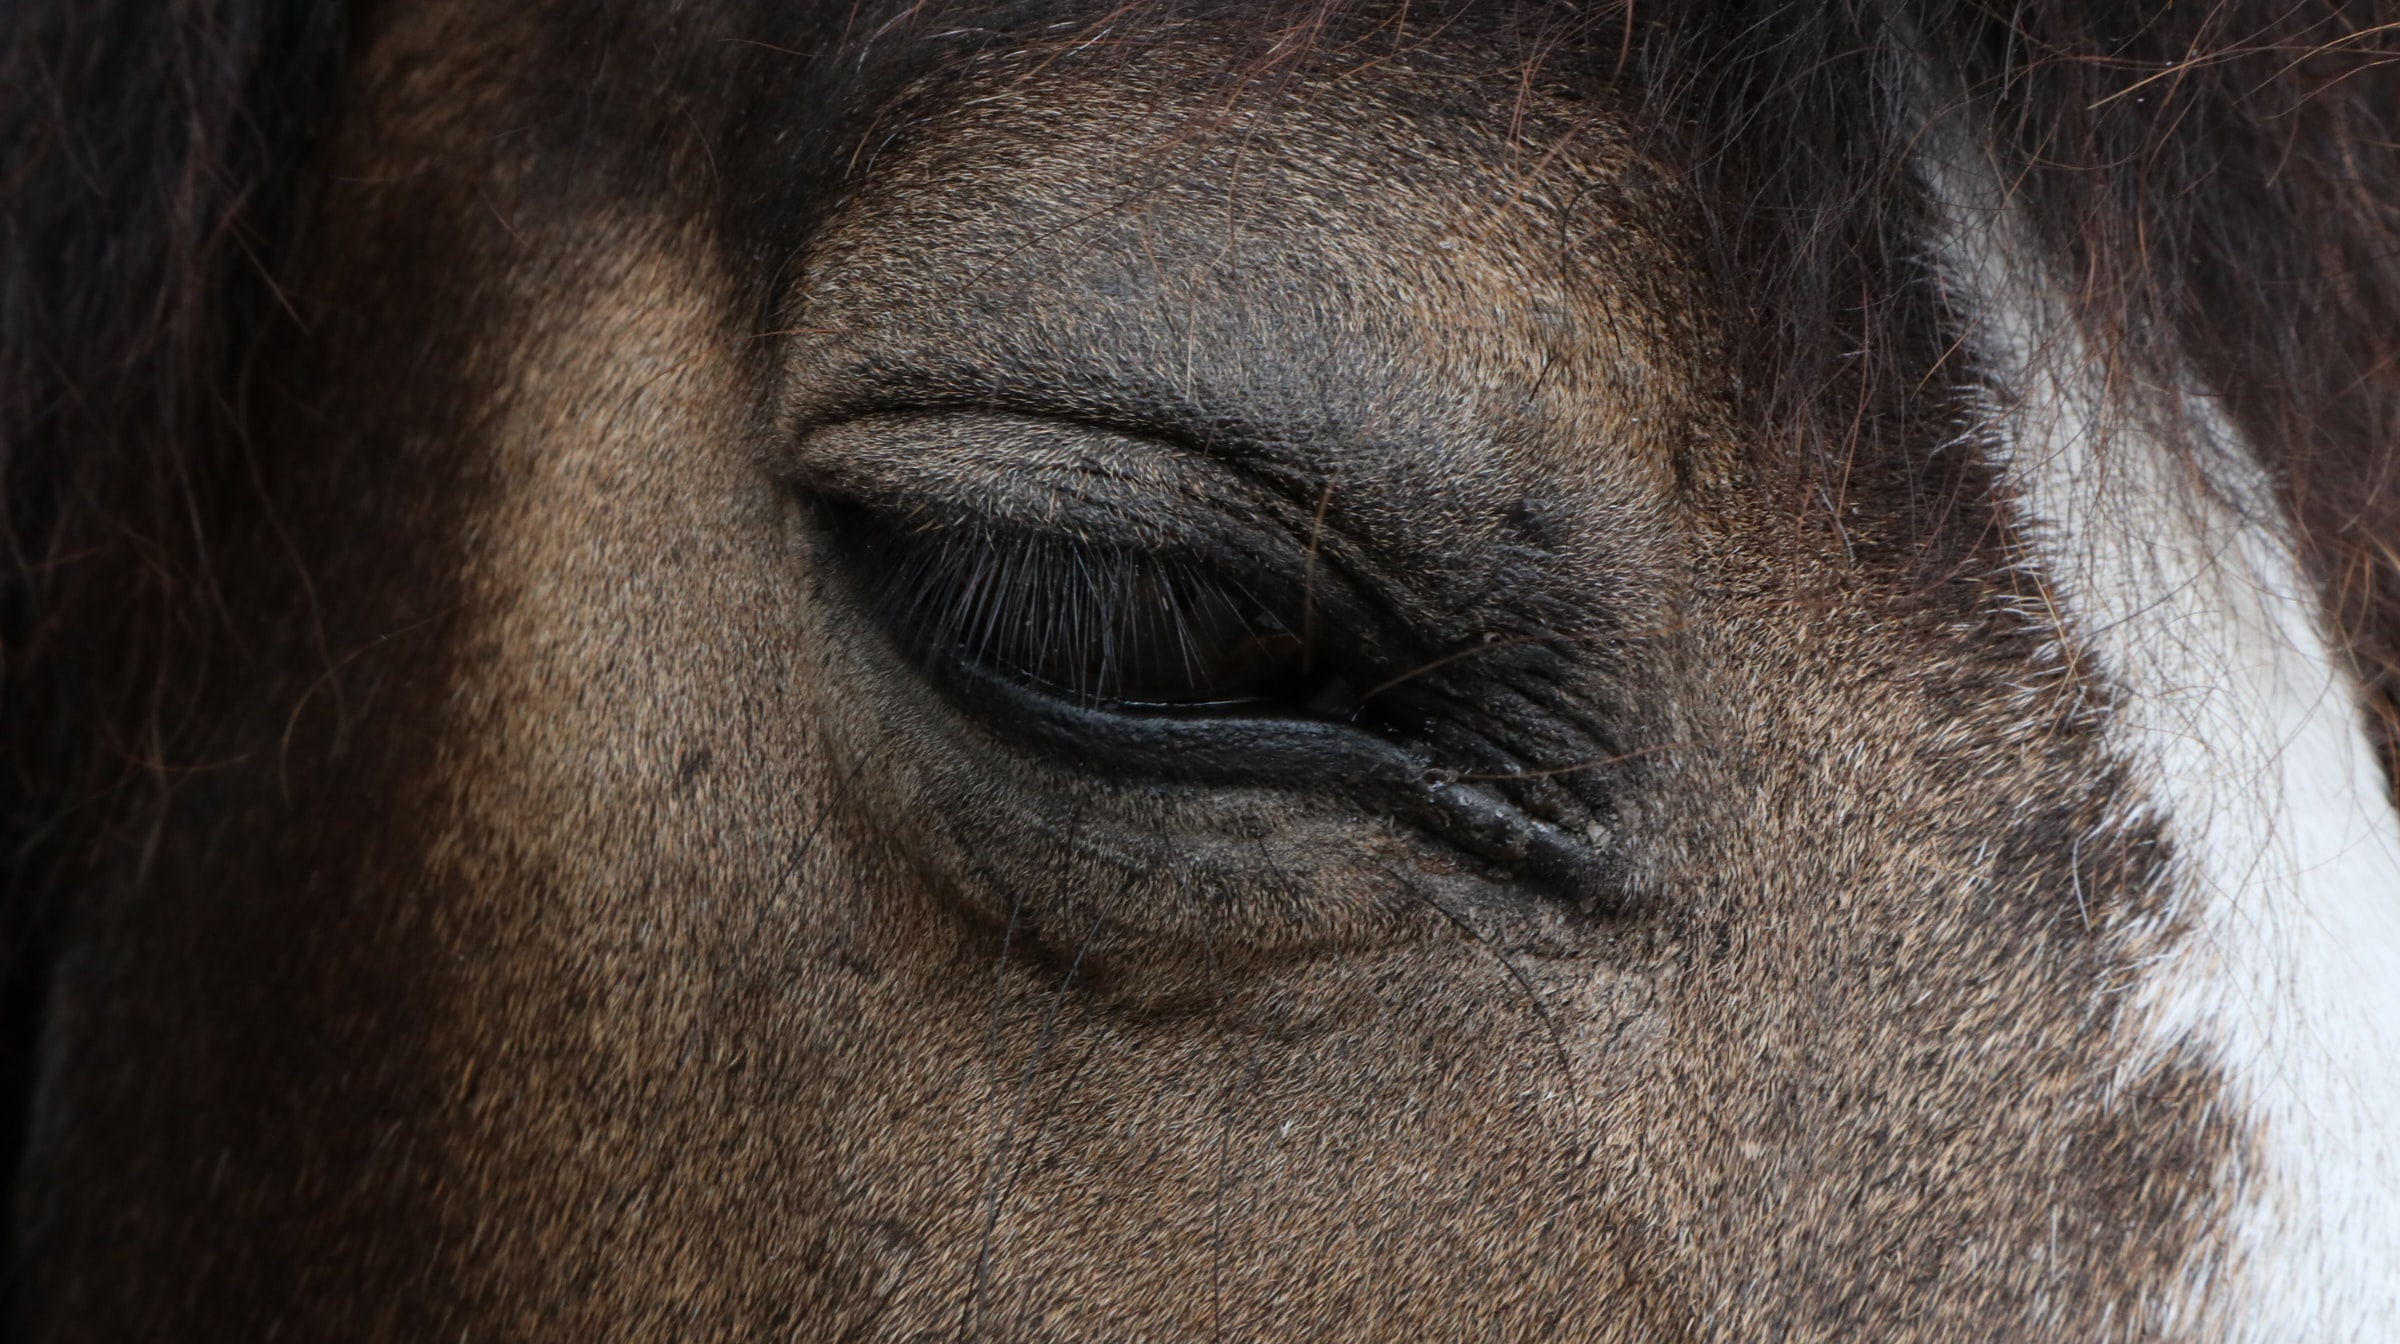 right horse eye